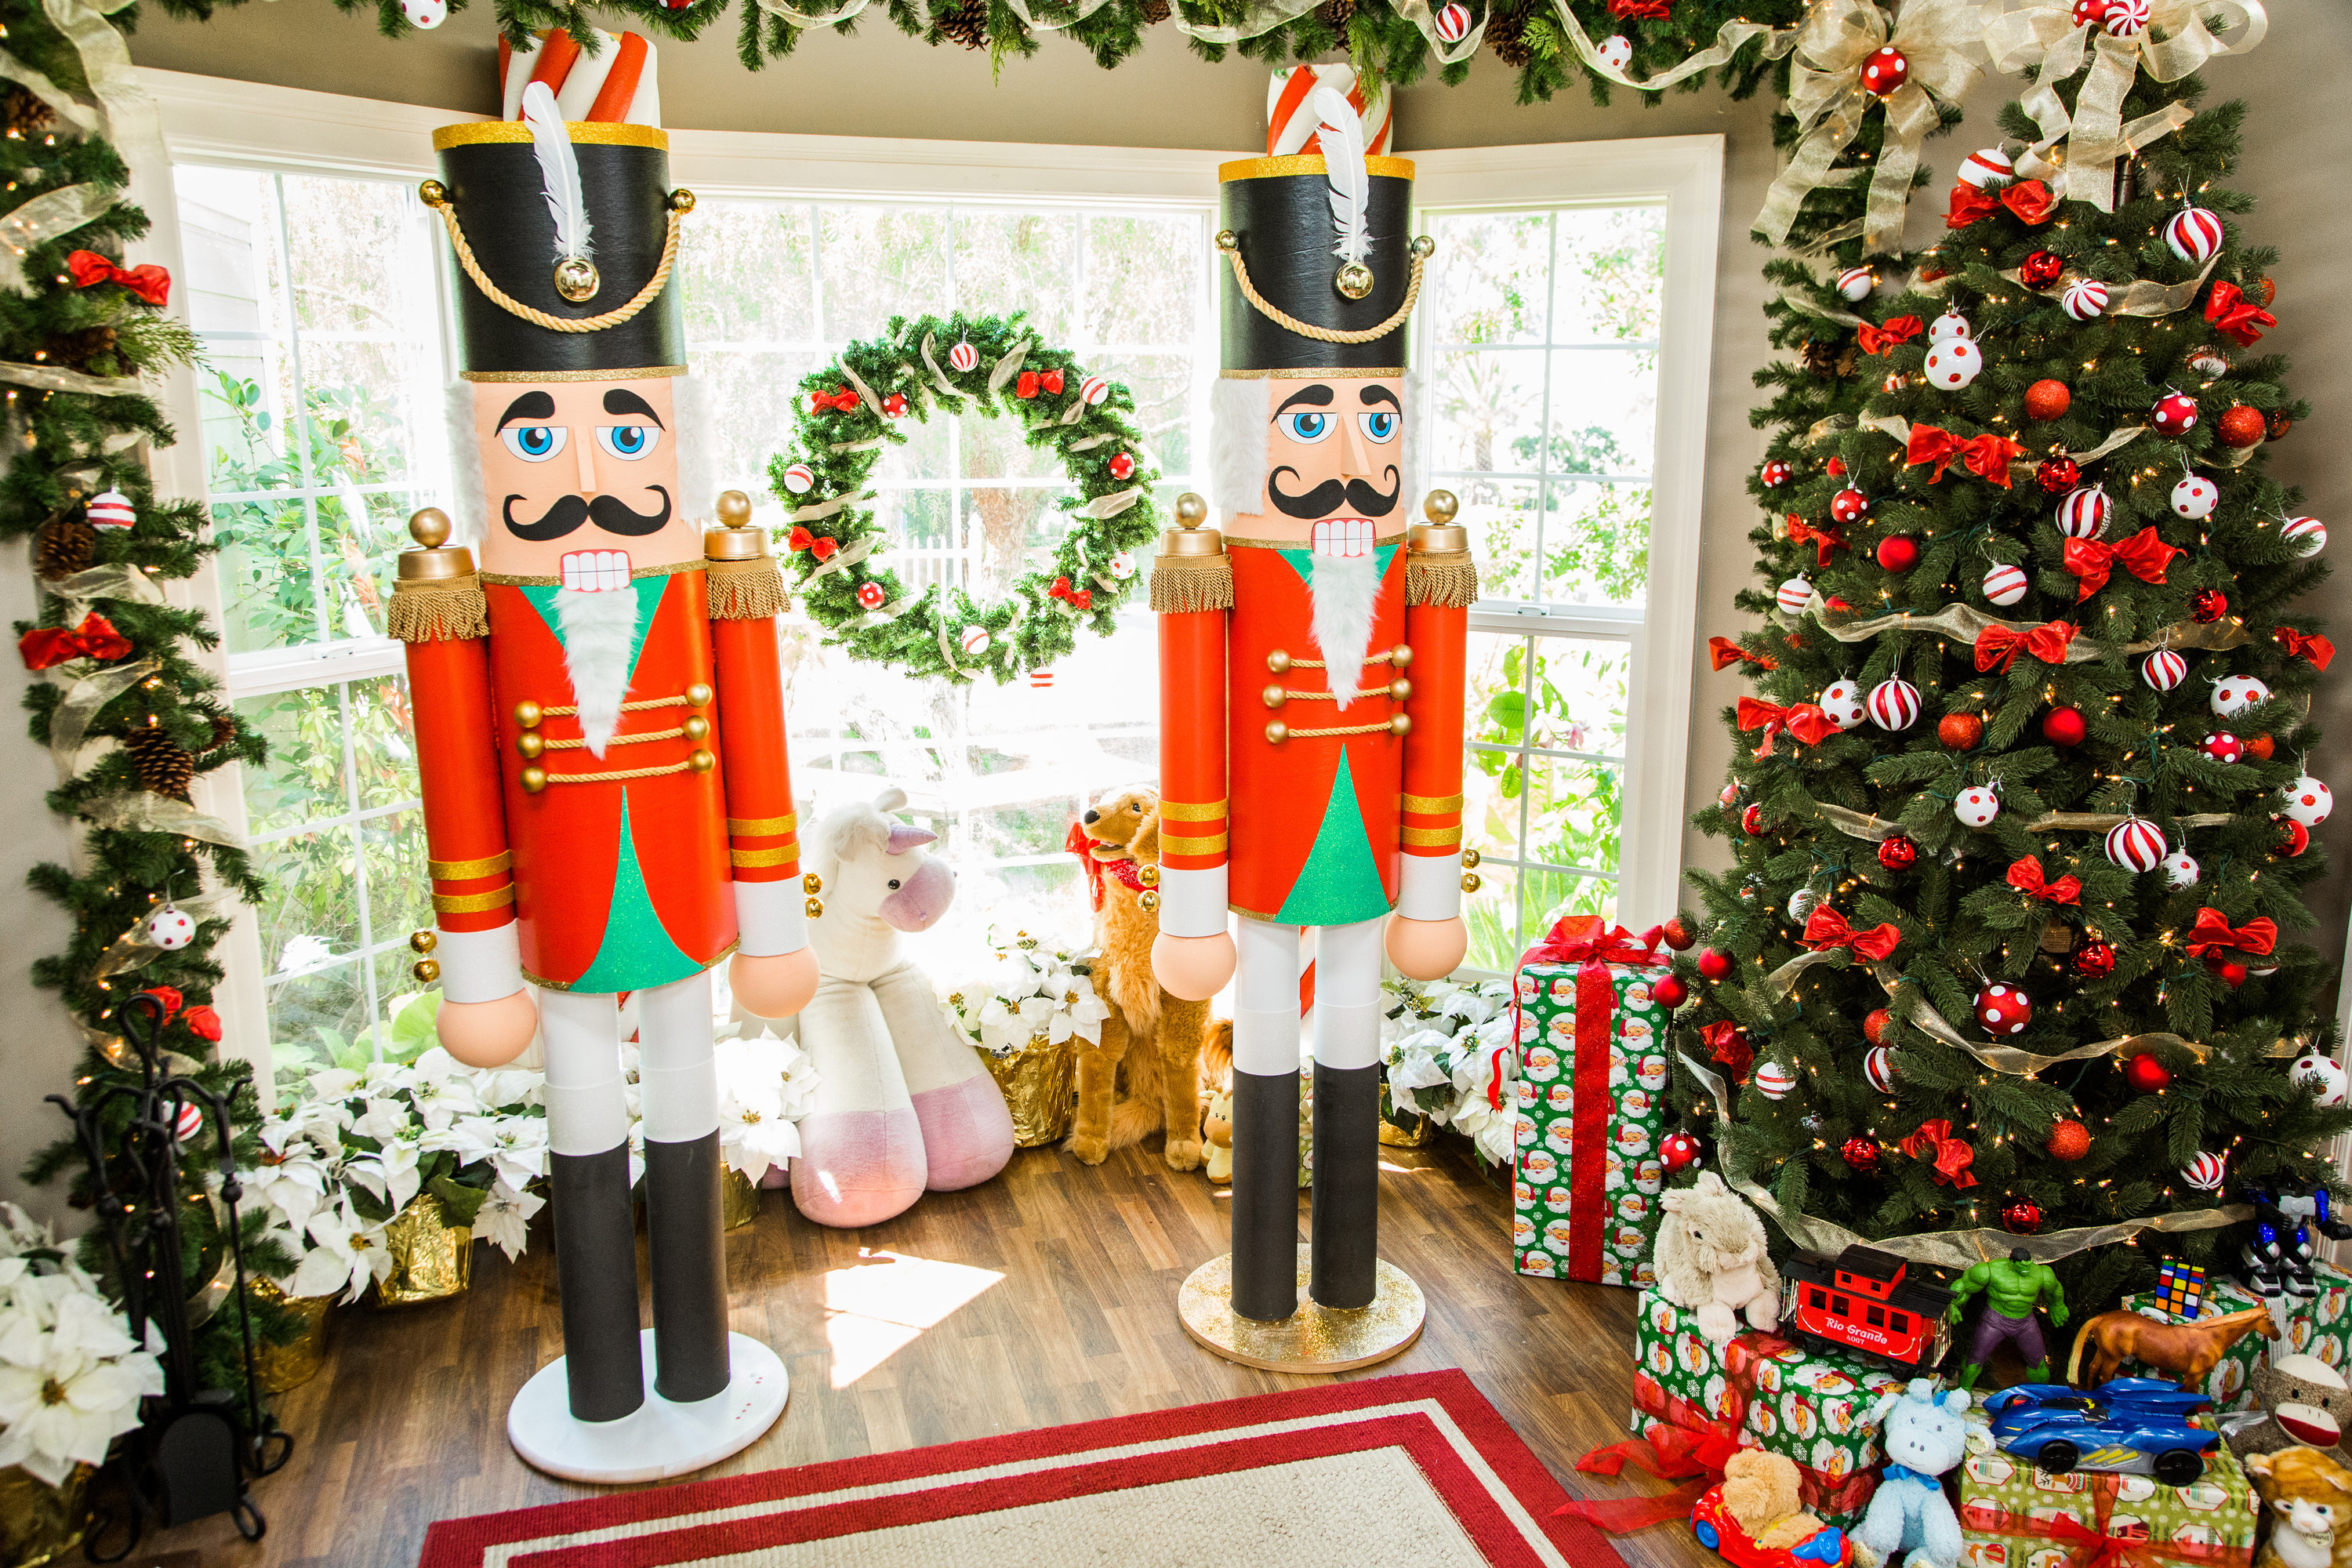 How To - DIY Life-Size Nutcracker | Hallmark Channel